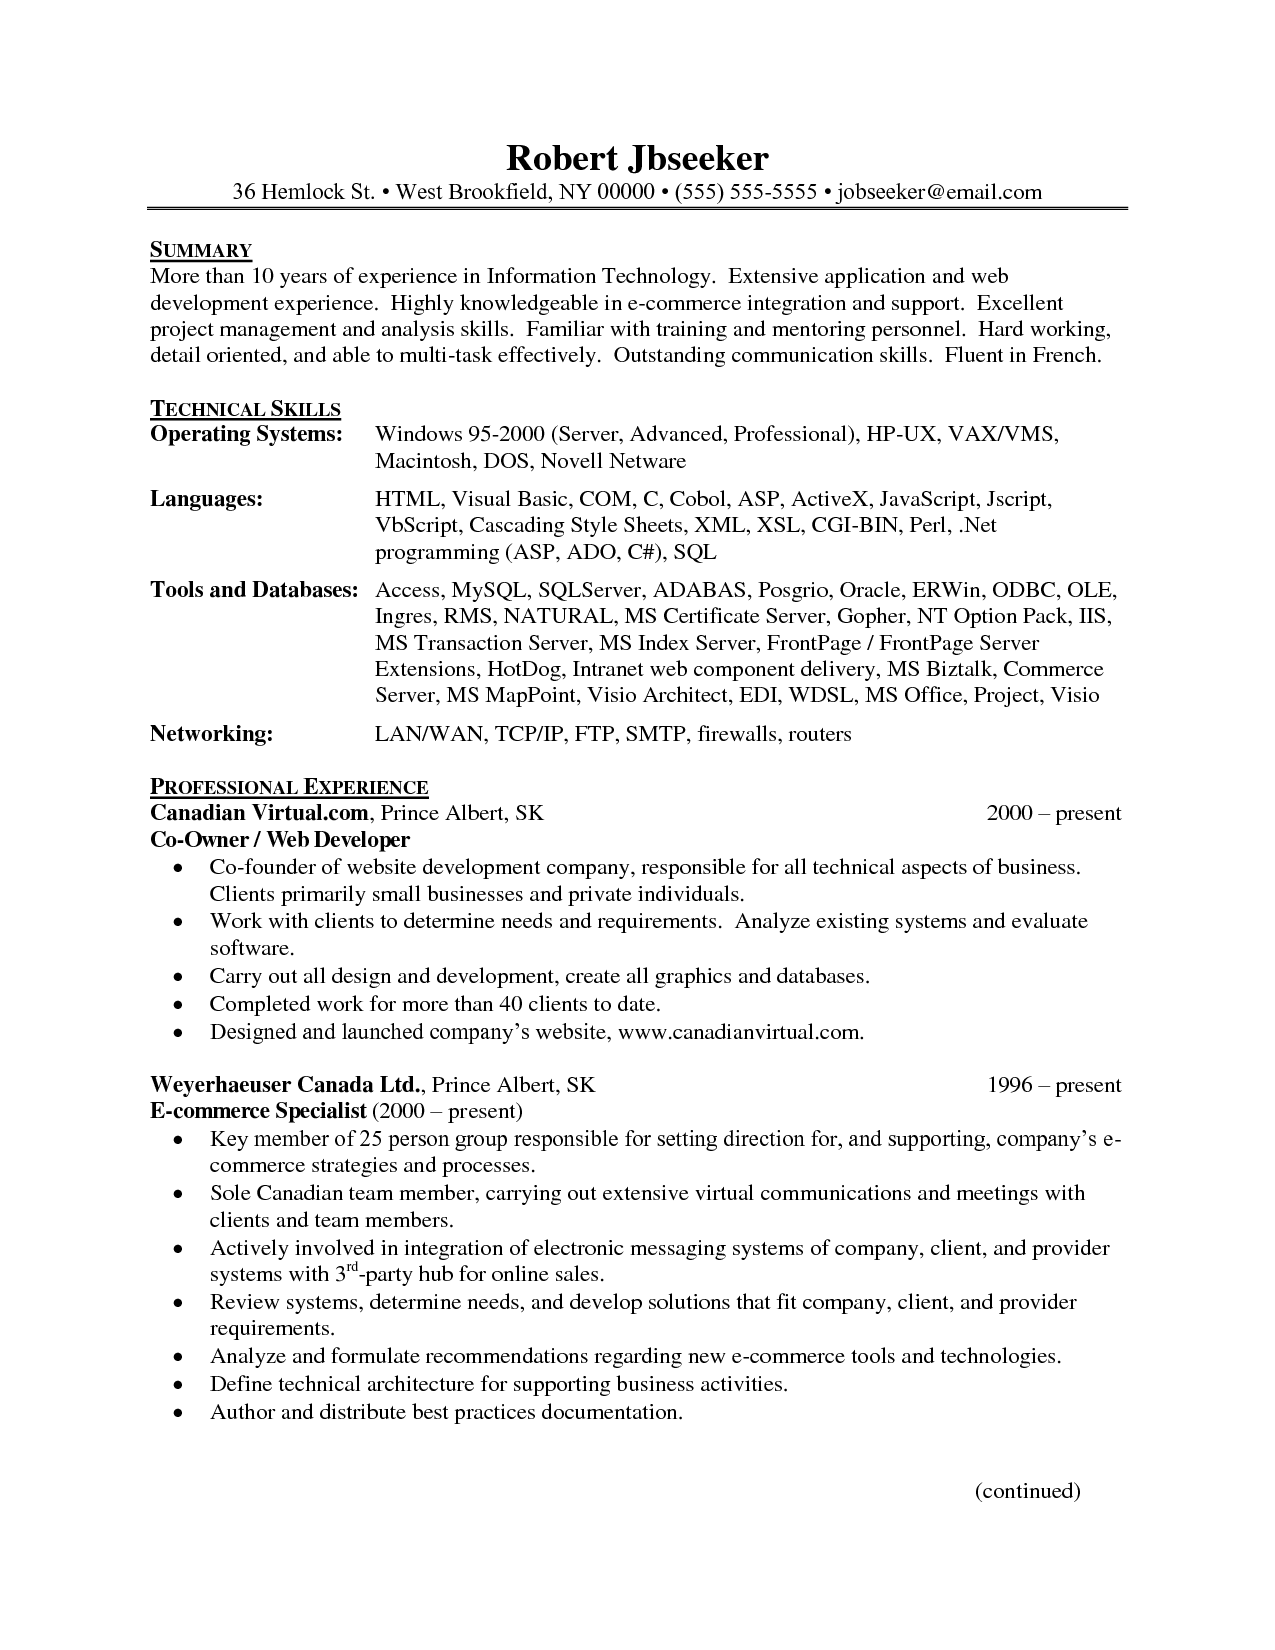 Web Designer Resume Example Web Designer Resume Example Download Web Designer Resume Example 2